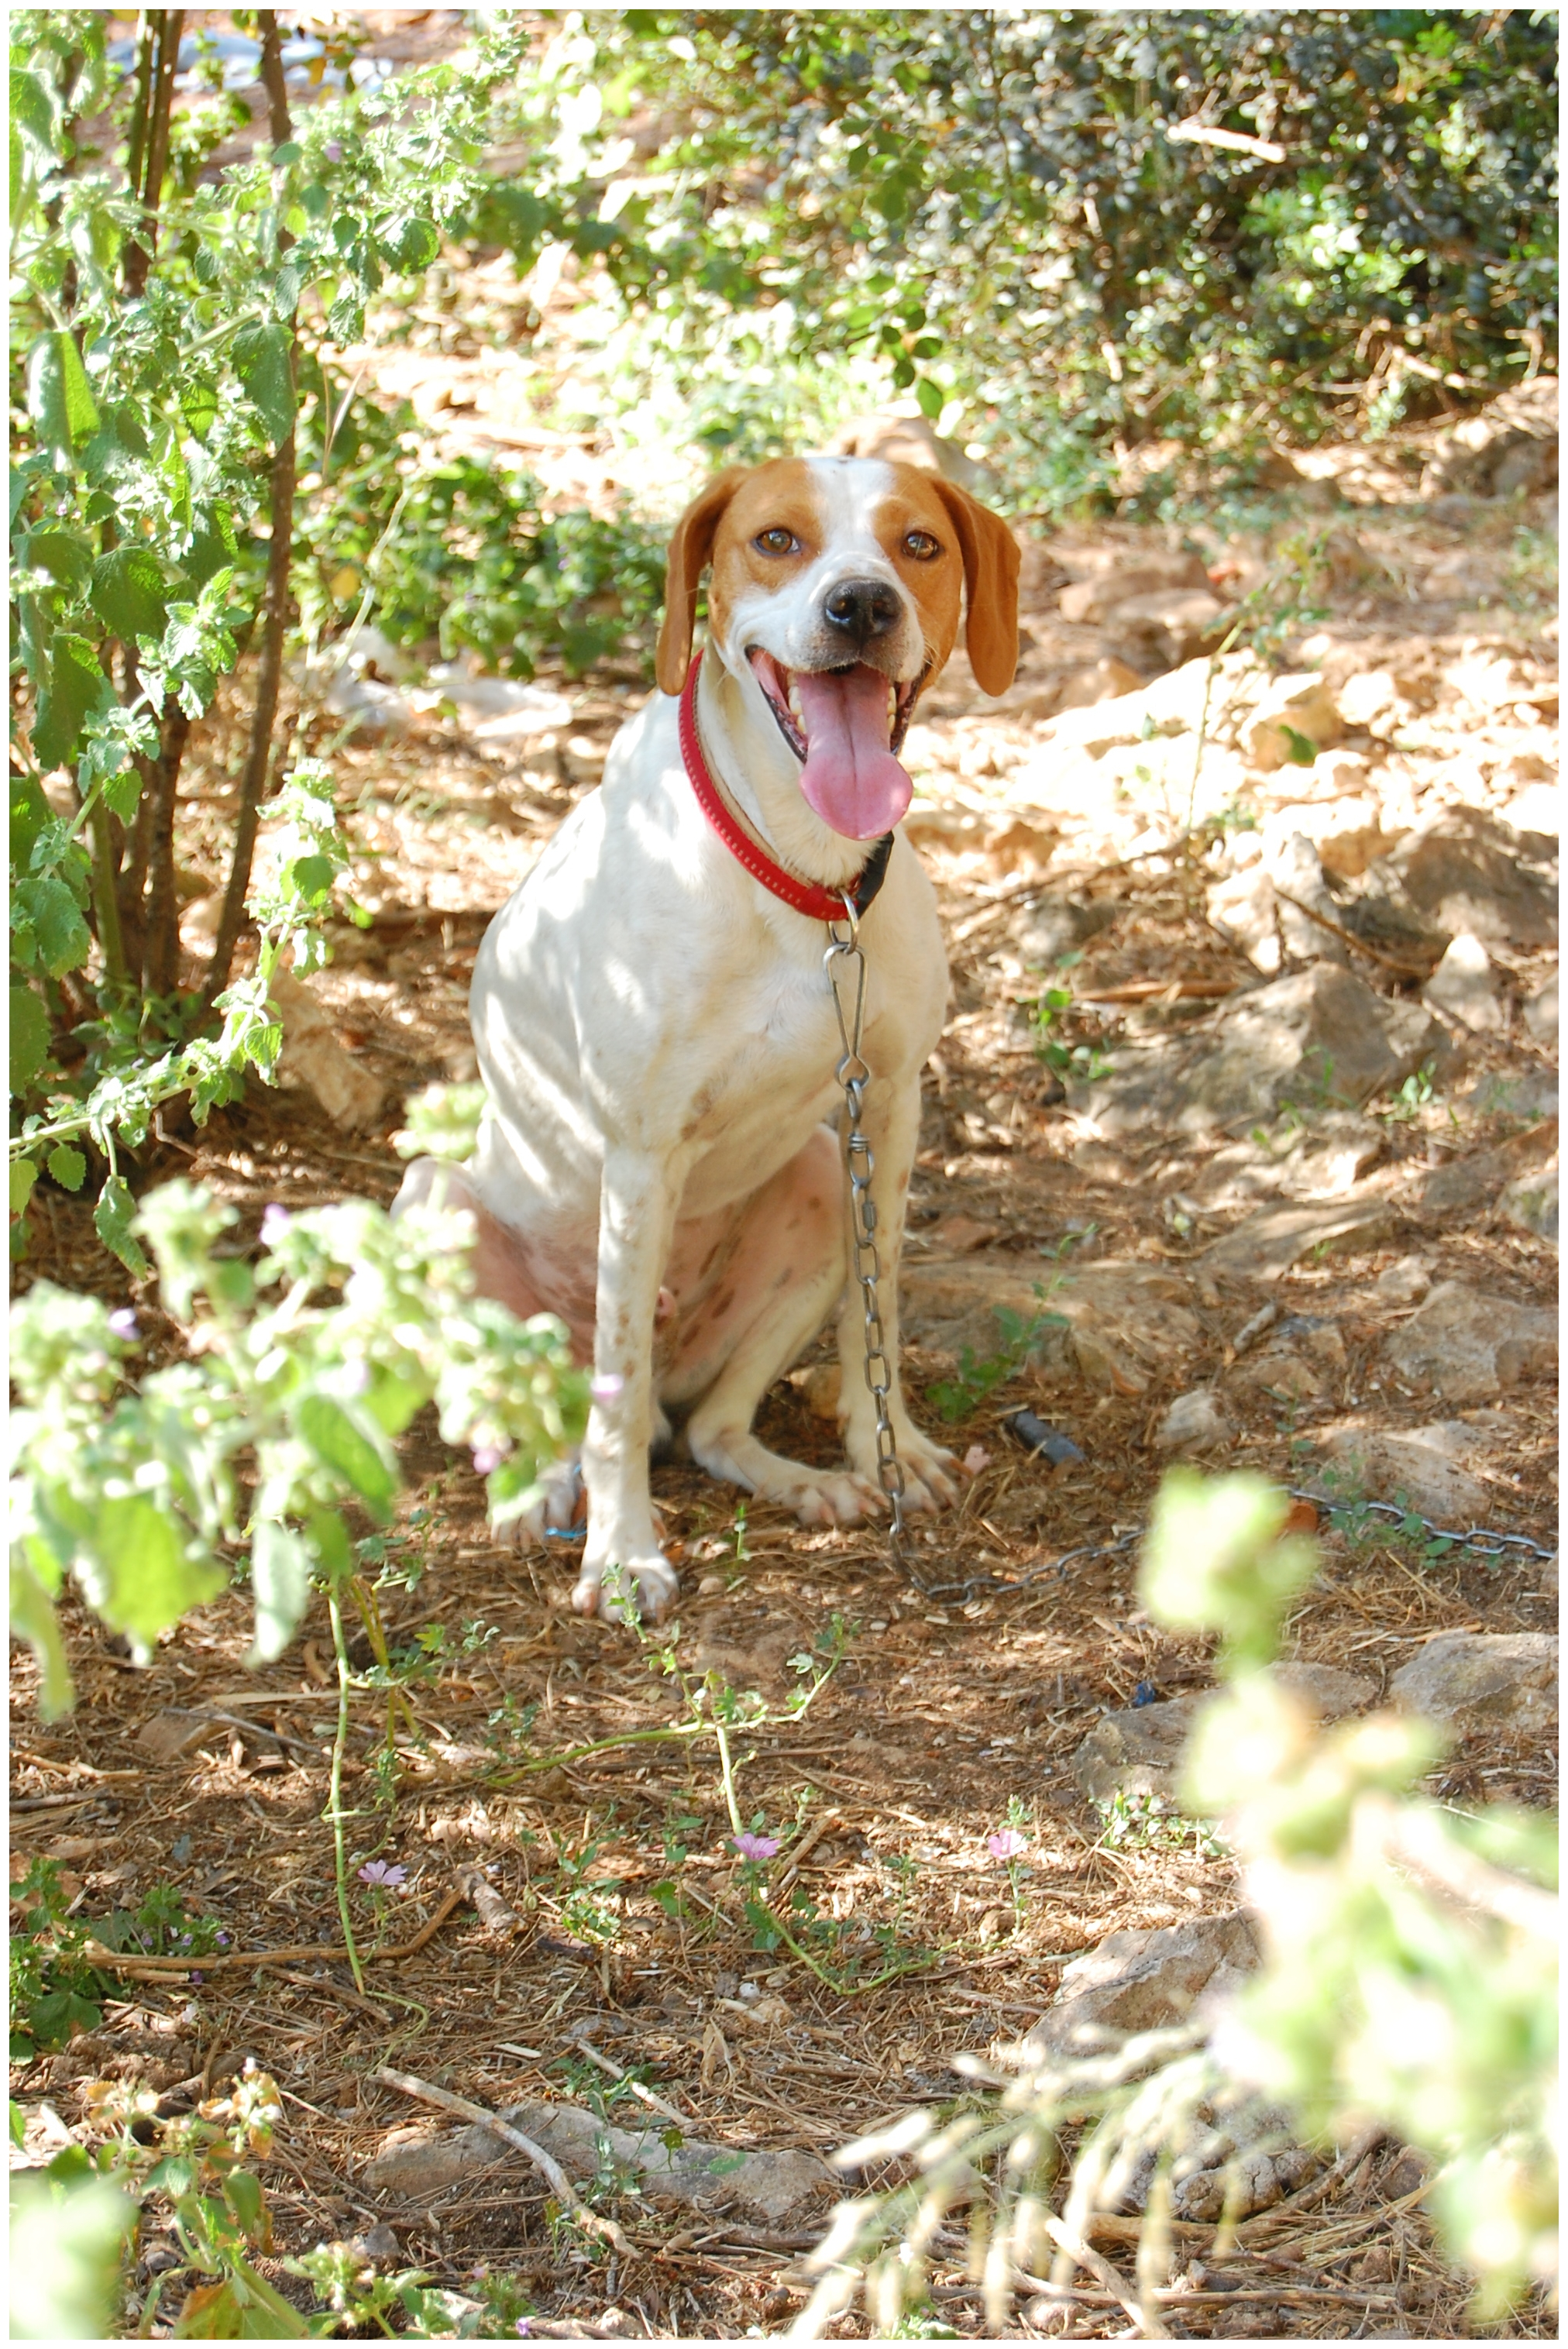 Istrian Shorthaired Hound dog in the forest wallpaper